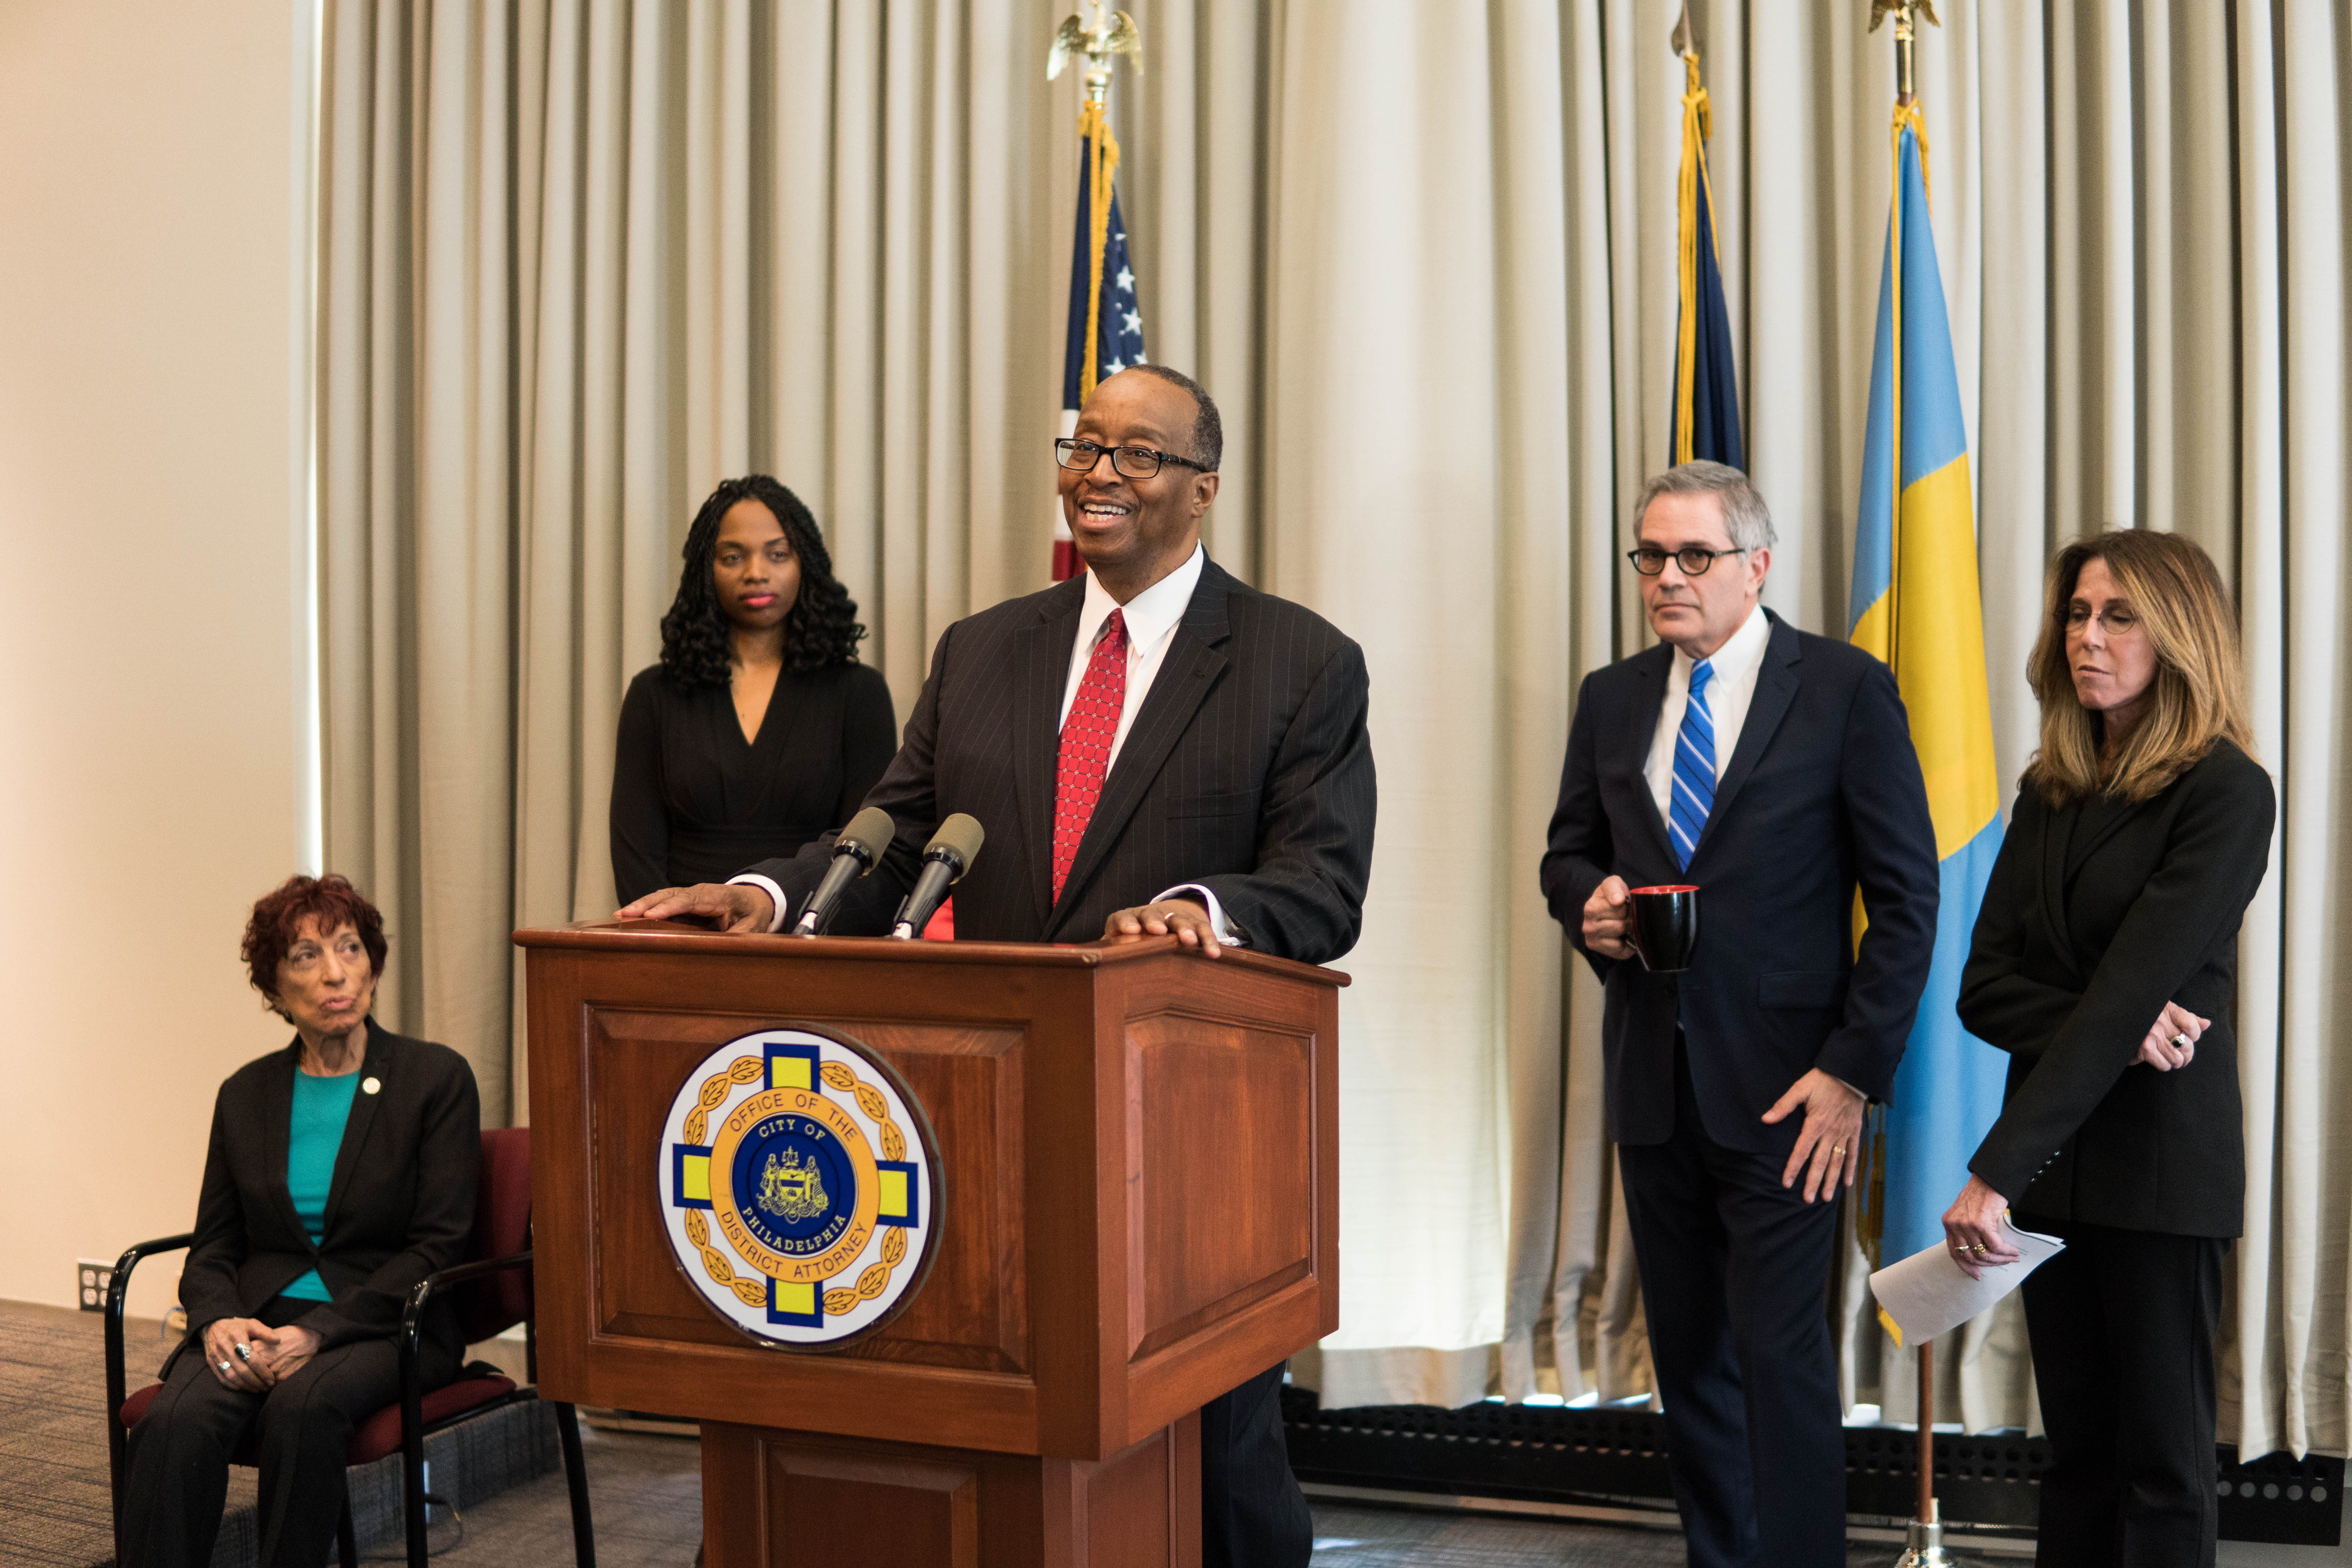 Robert Listenbee speaking at the District Attorney's Office during his appointment as the First Assistant to the DA.